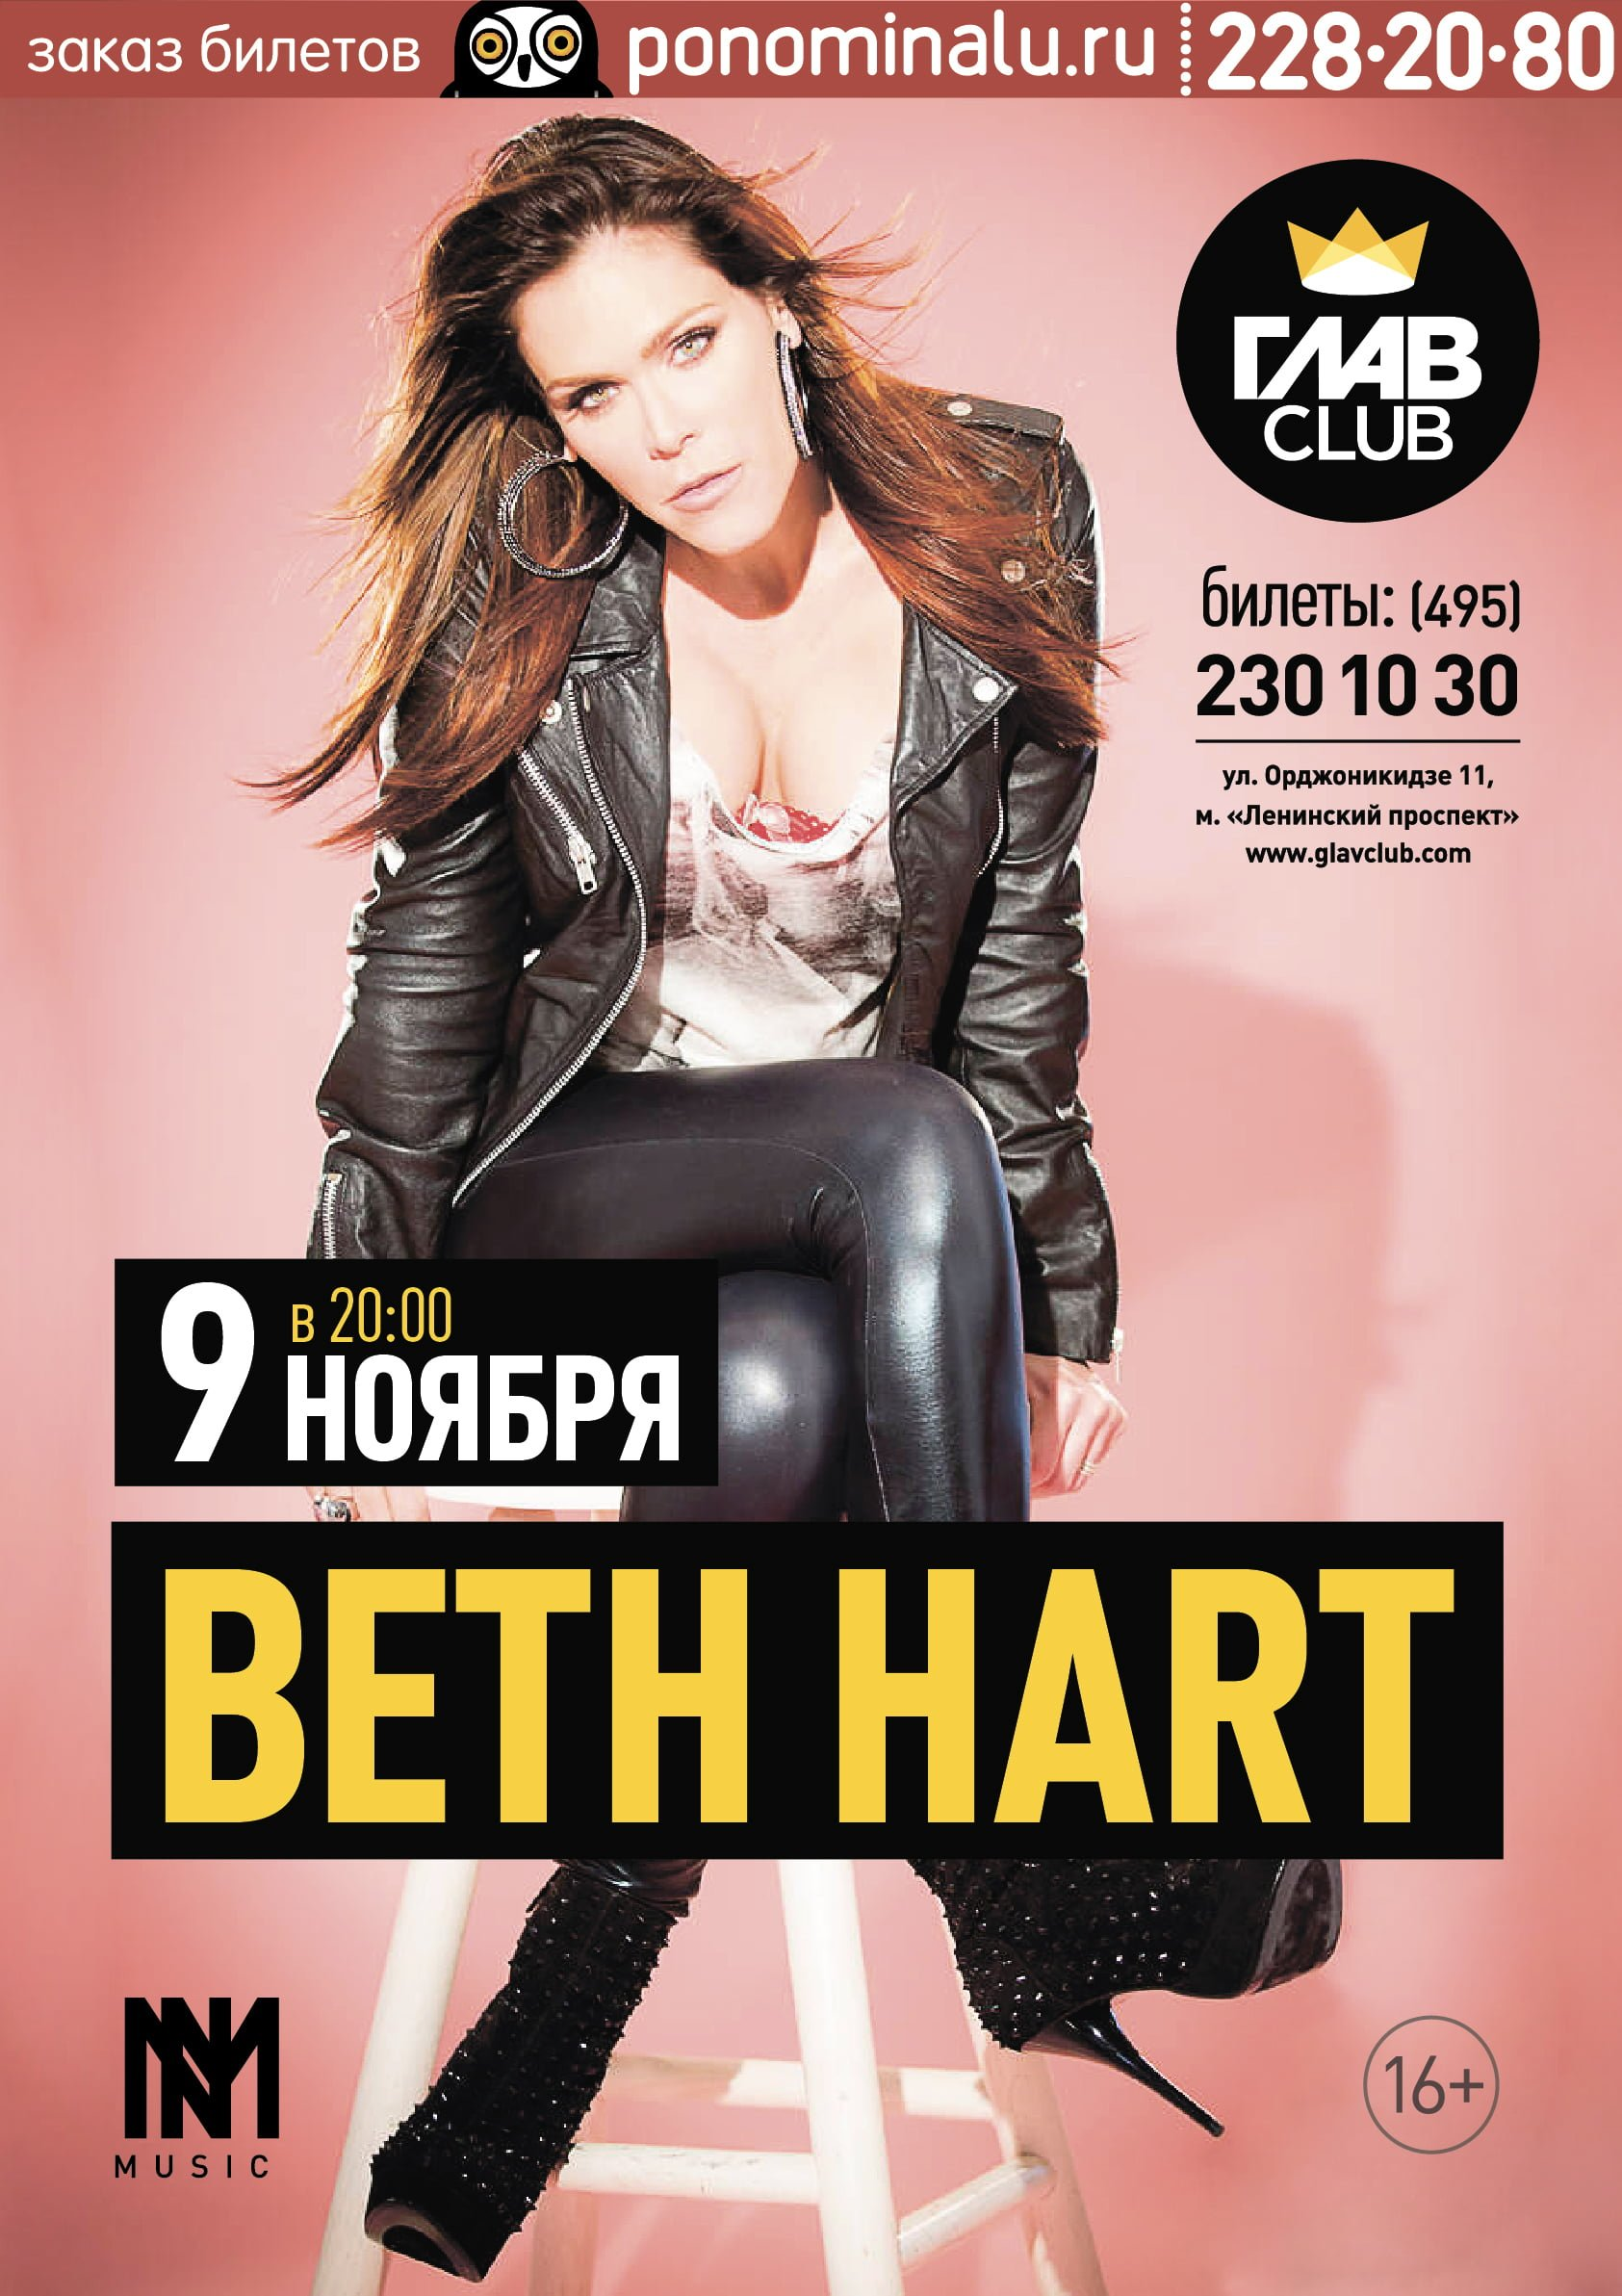 Beth Hart returns to Moscow